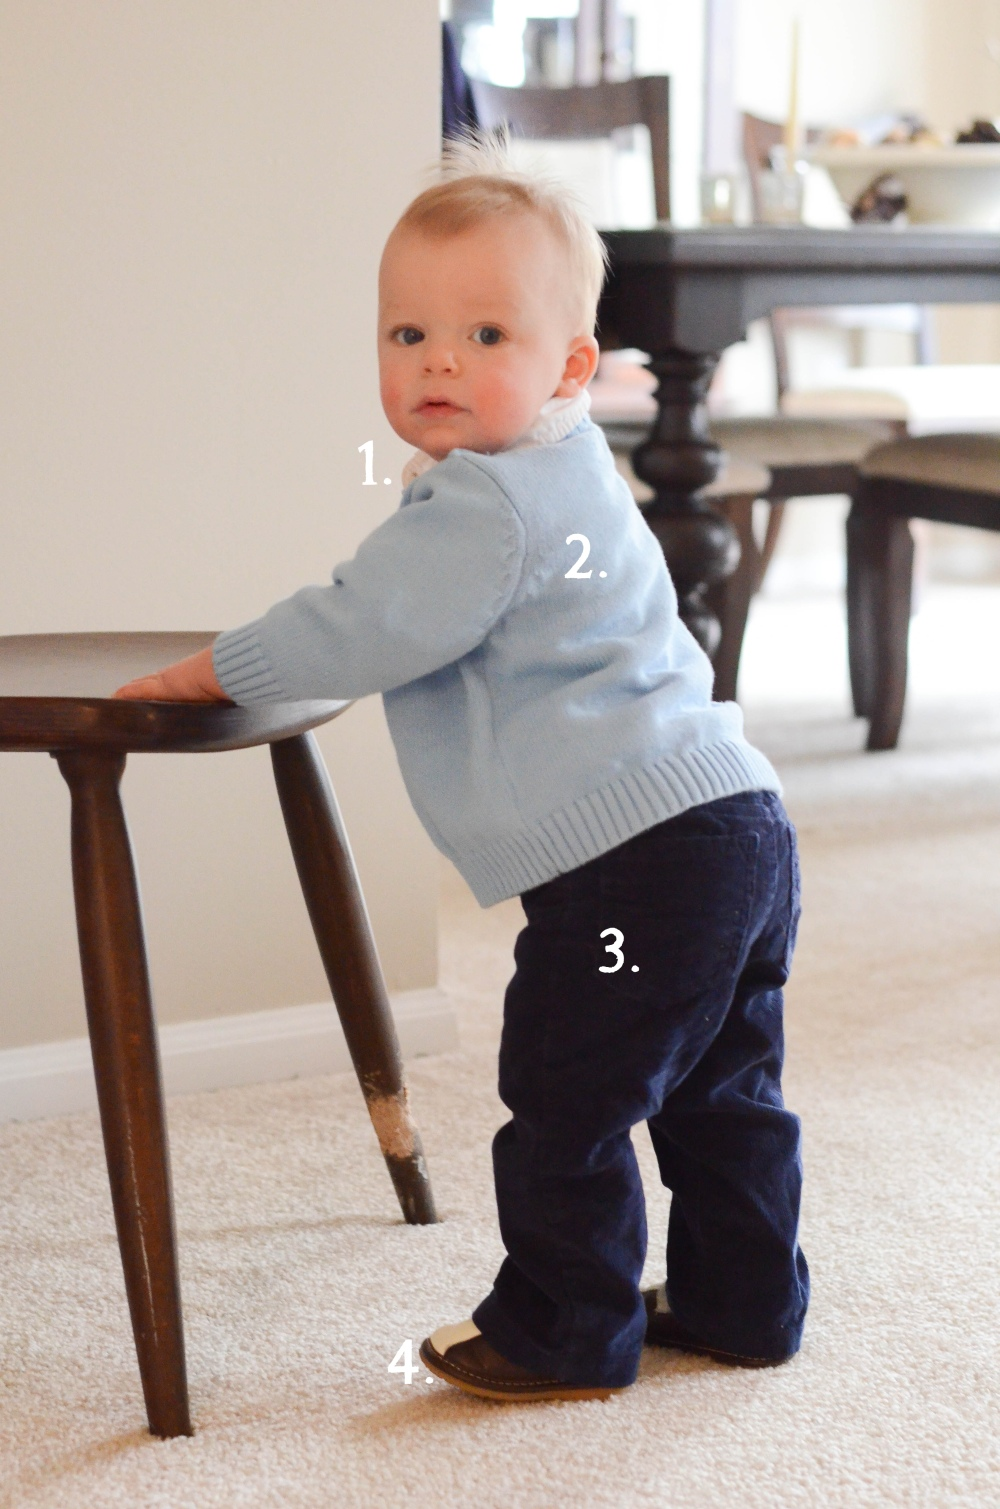 1. Carters: White Oxford Onesie Shirt 2. Consignment Sale: Childrens place light blue sweater 3. Target: Navy Corduroy Jeans 4. Zulily: Brown and White Squeaker Loafers